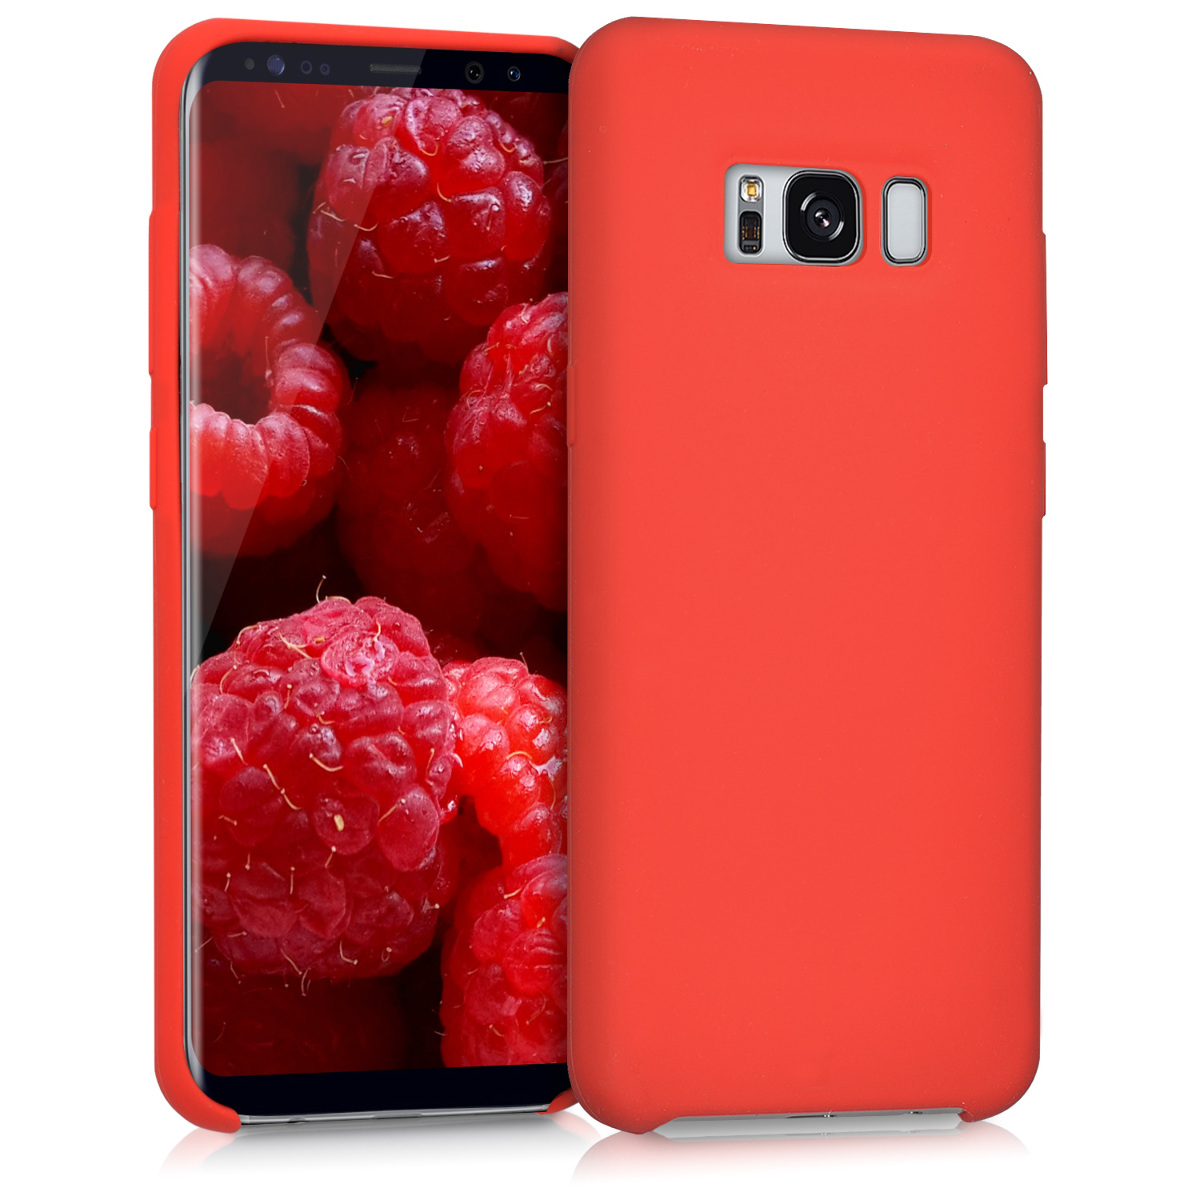 KW TPU Θήκης Σιλικόνης Samsung Galaxy S8 - Soft Flexible Rubber Protective Cover - Red (41853.09)